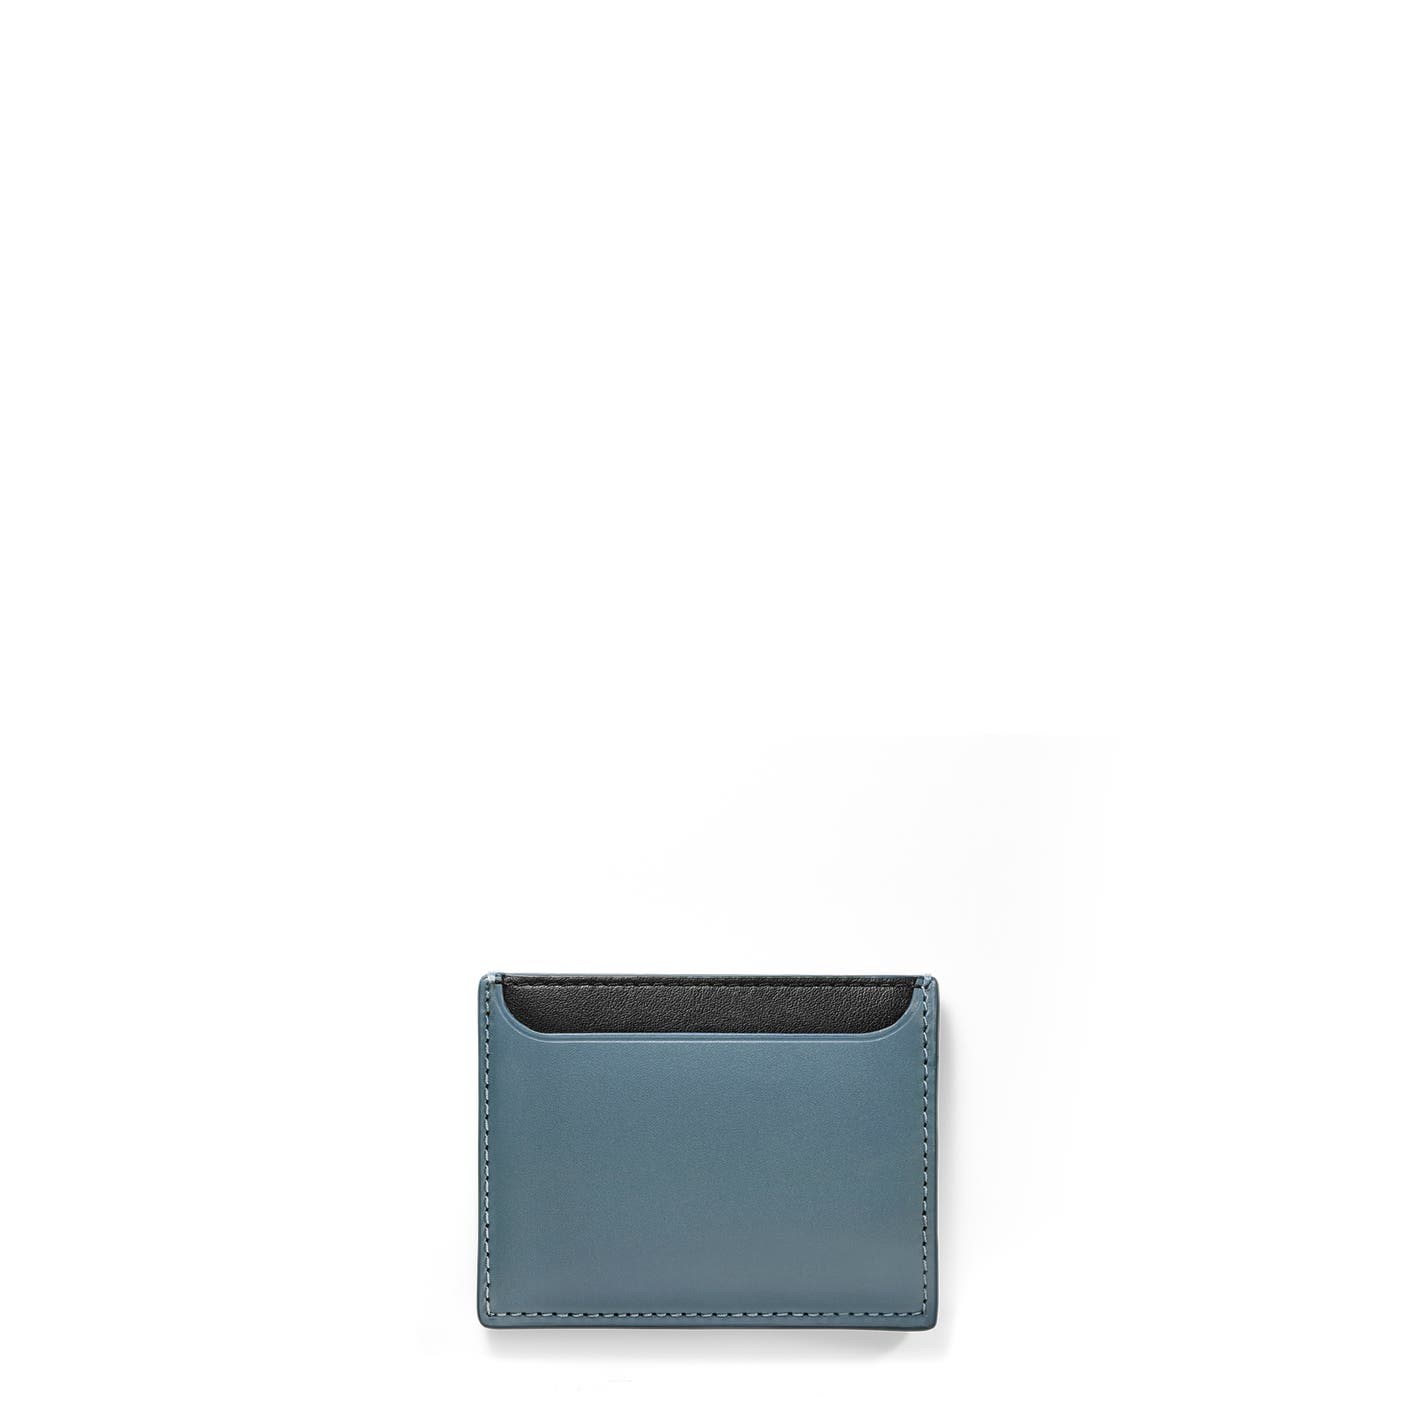 The Slim Card Holder